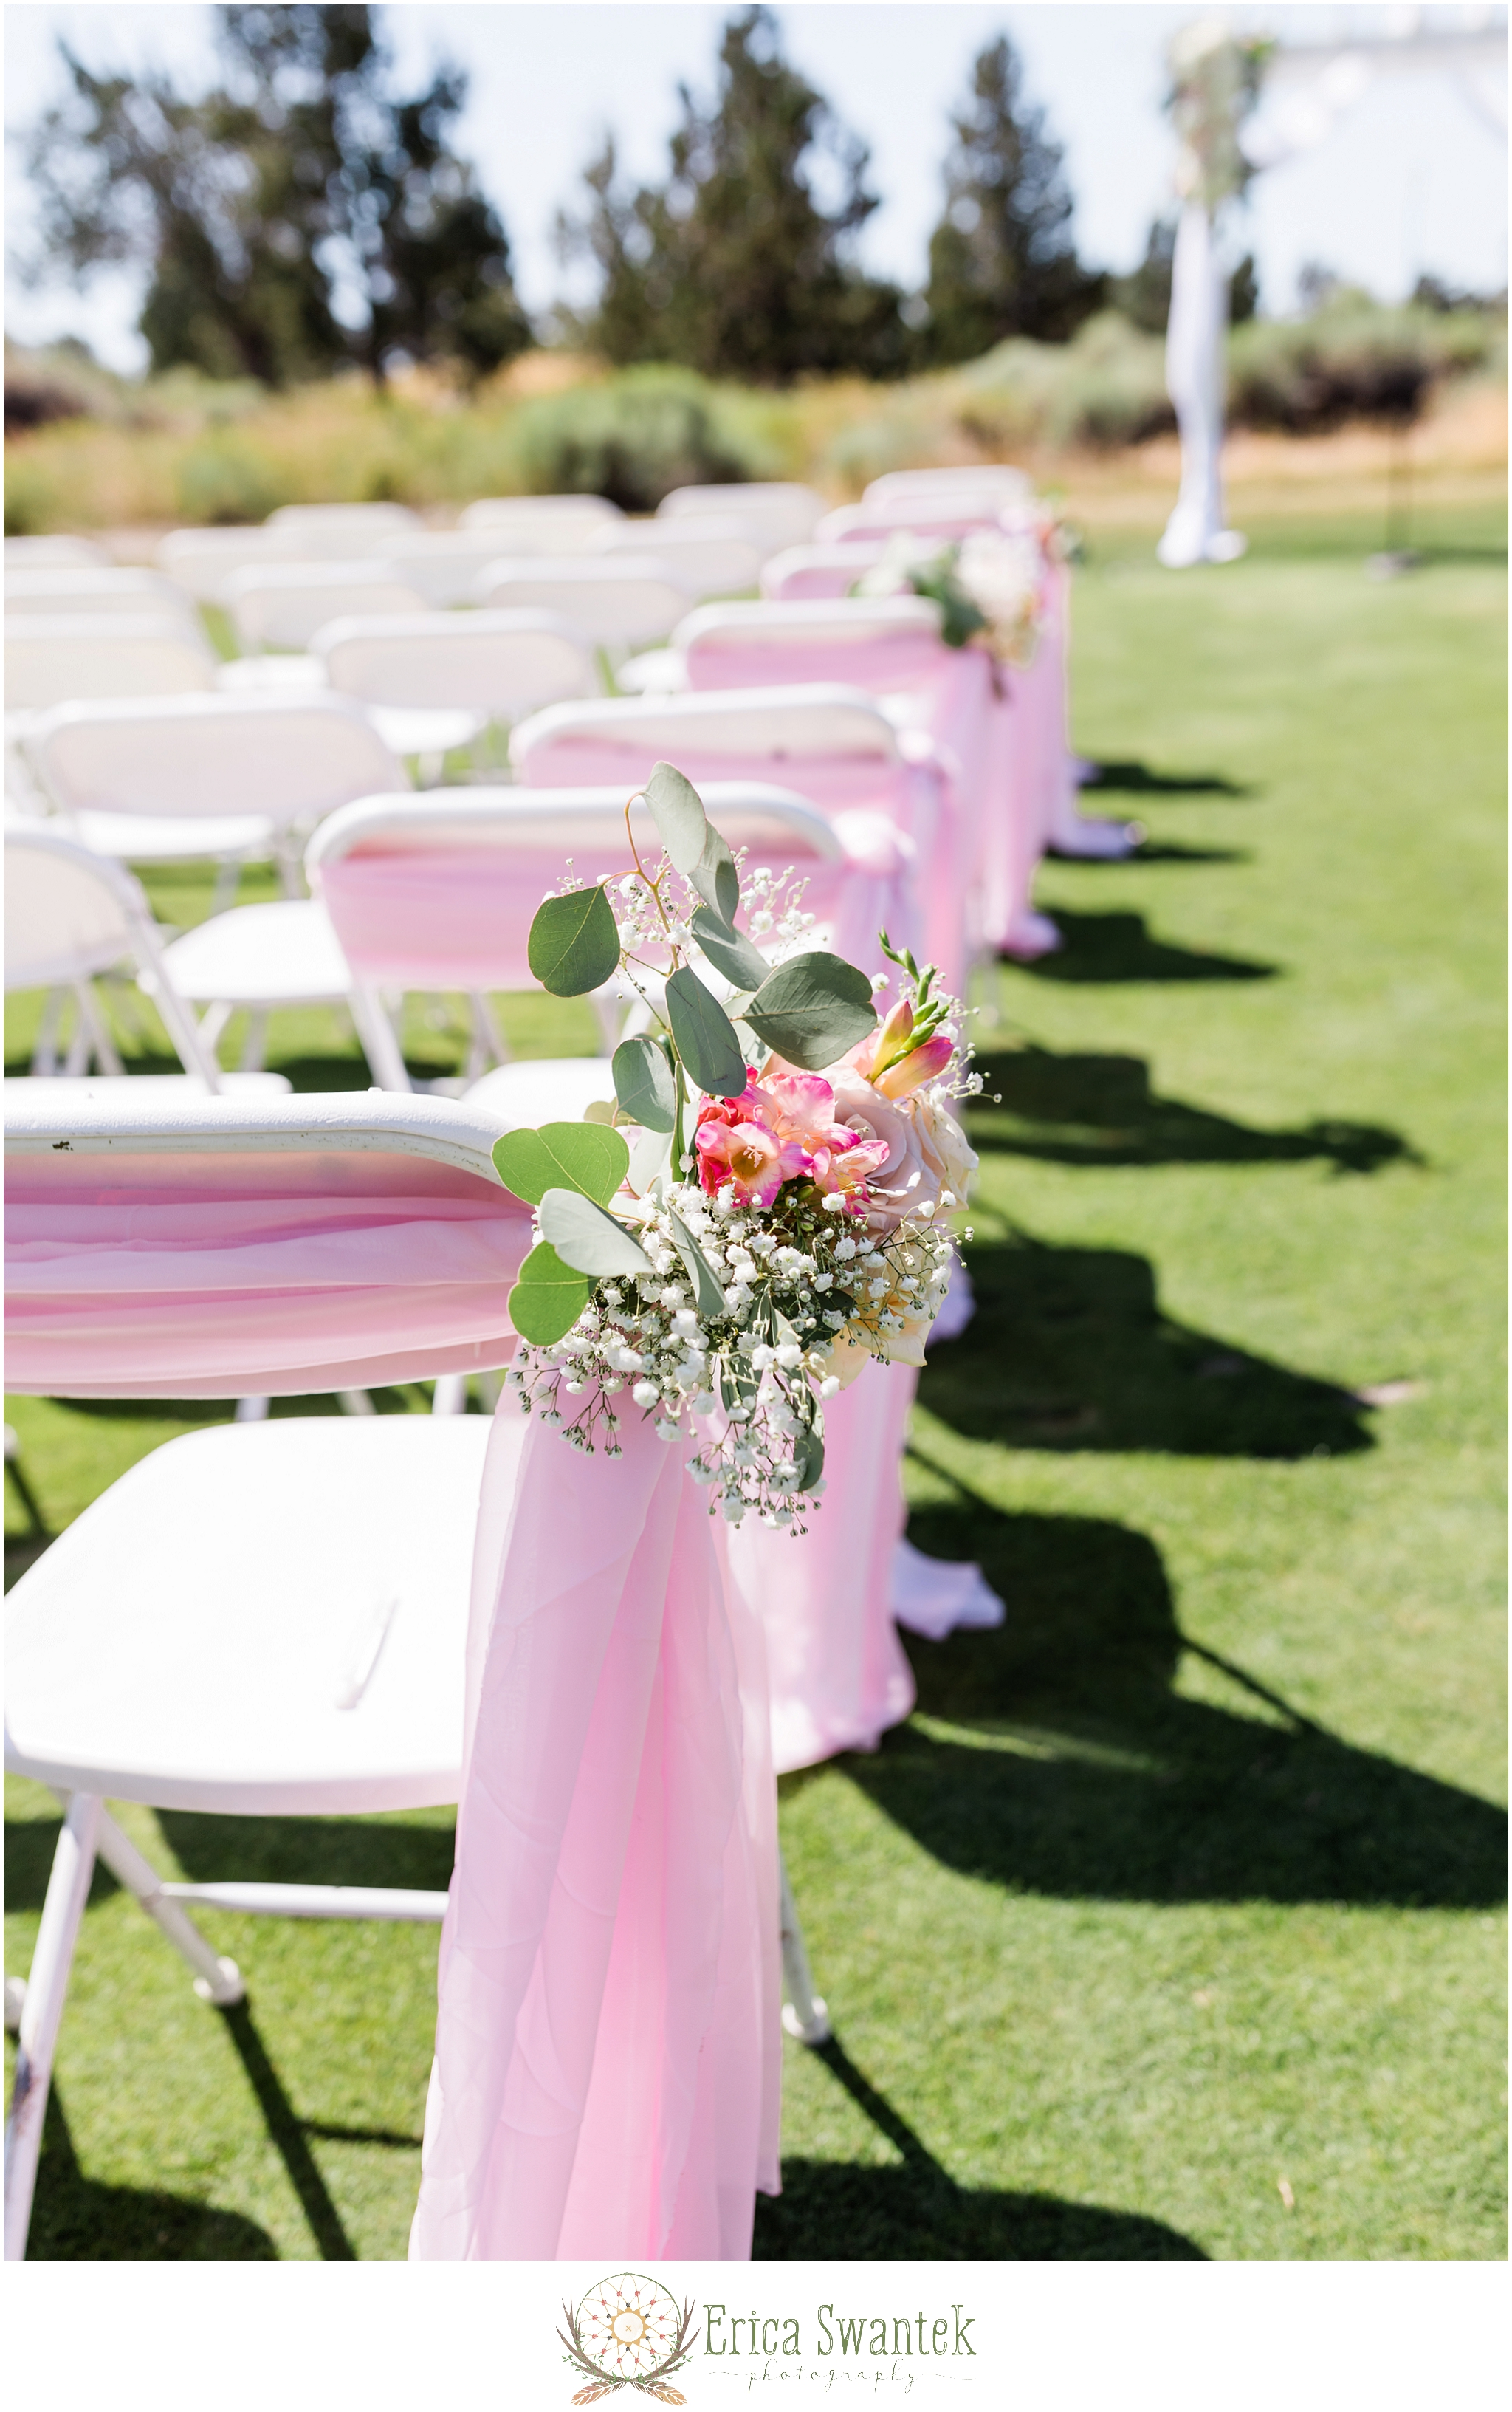 Juniper-Golf-Course Erica-Swantek-Photography Bend Floral Artistry - Ceremony-Aisle Chairs.jpg